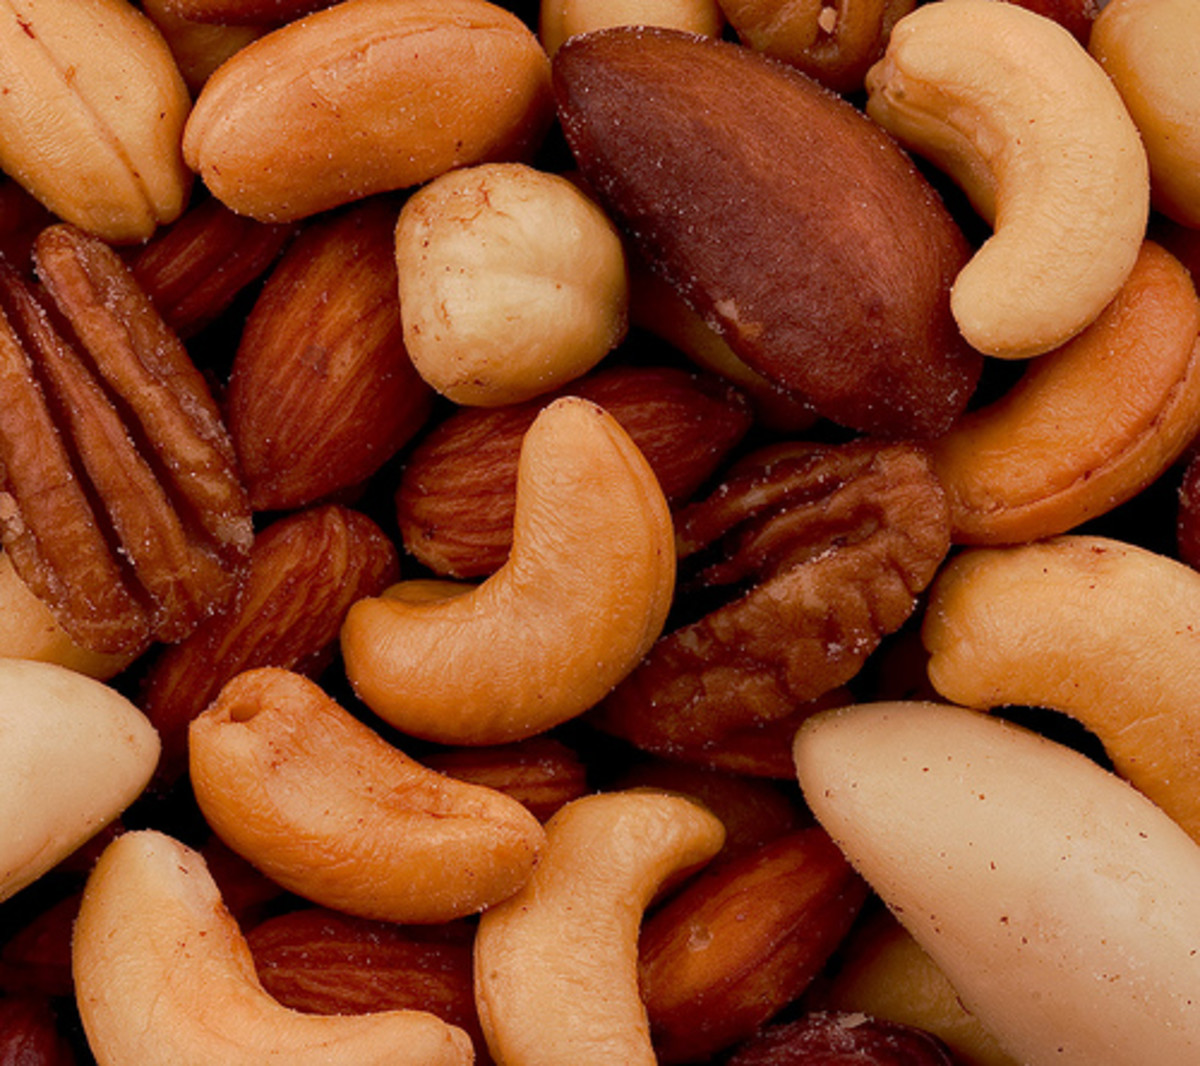 Mixed nuts- pecans, cashews, Brazil nuts